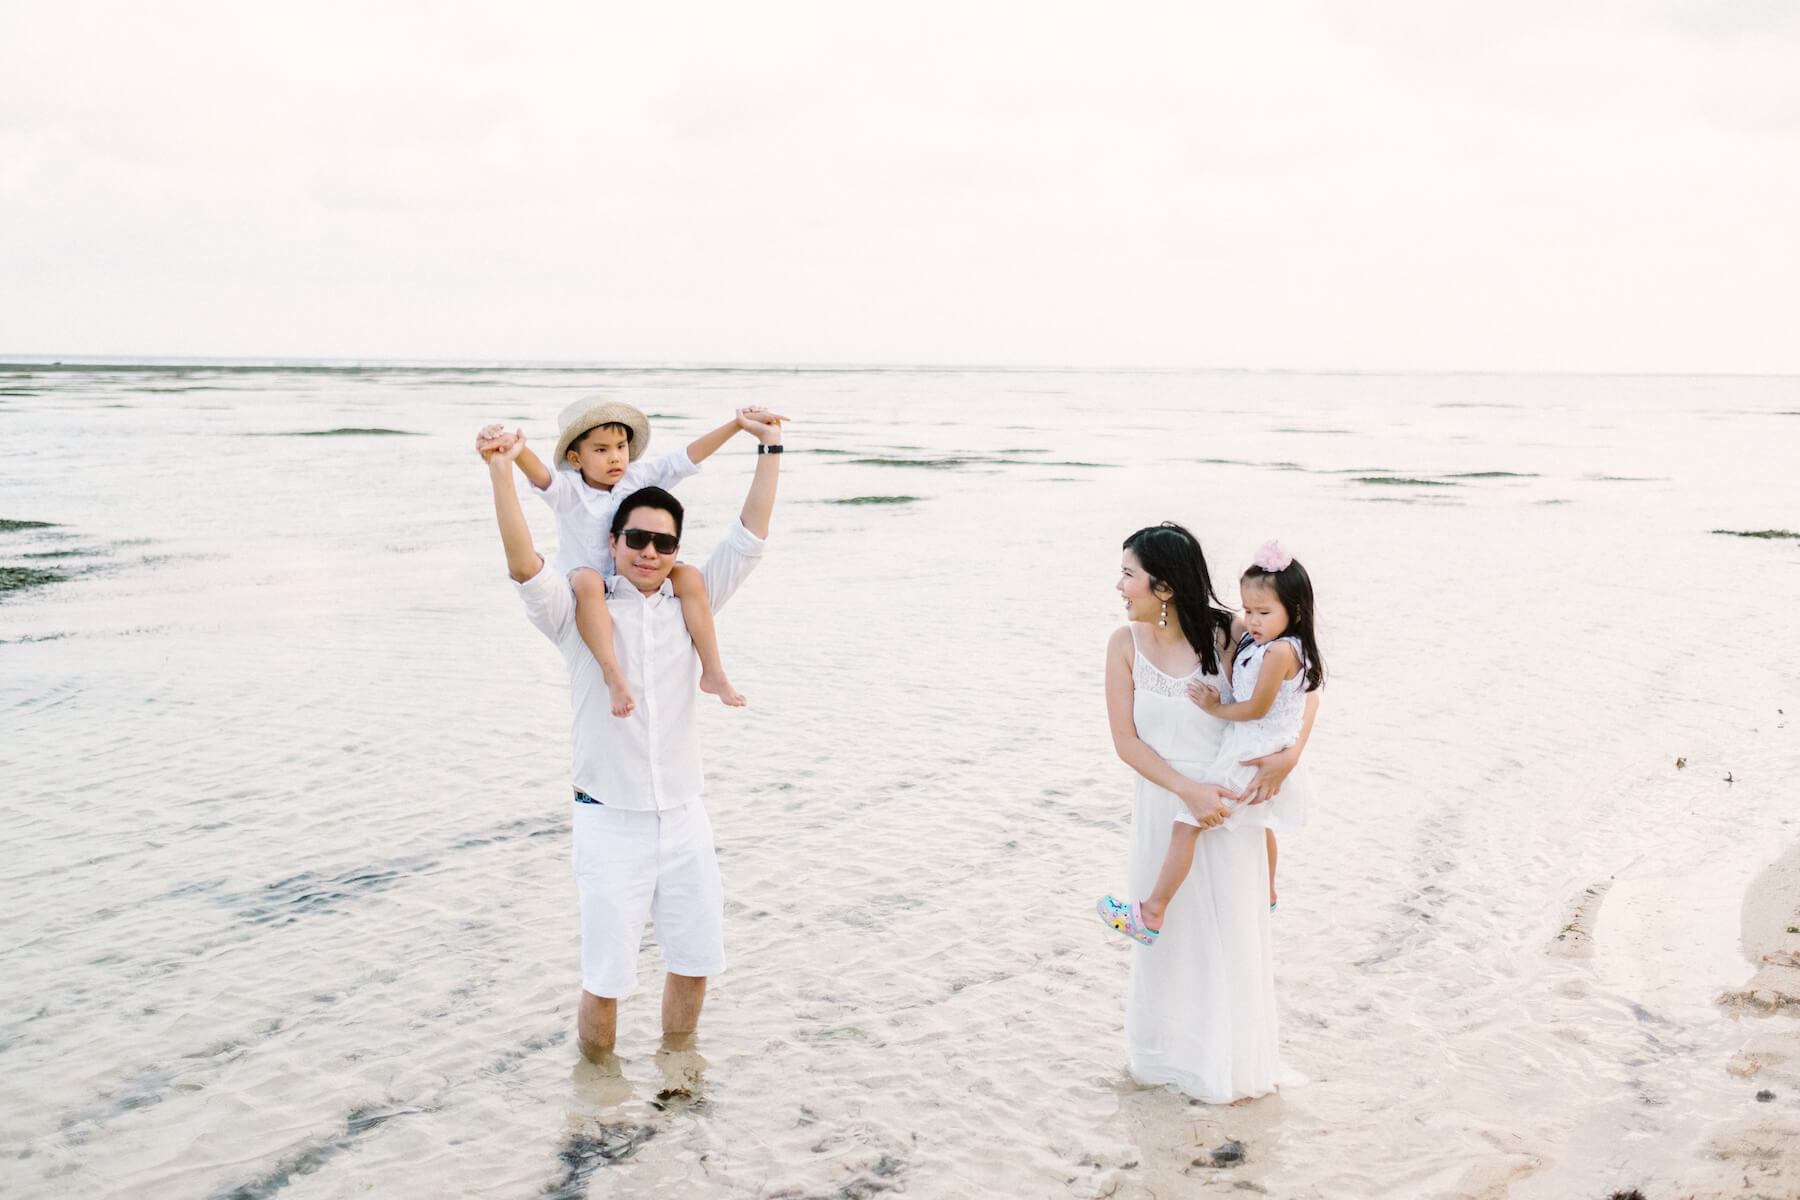 book a professional vacation photographer in bali, indonesia